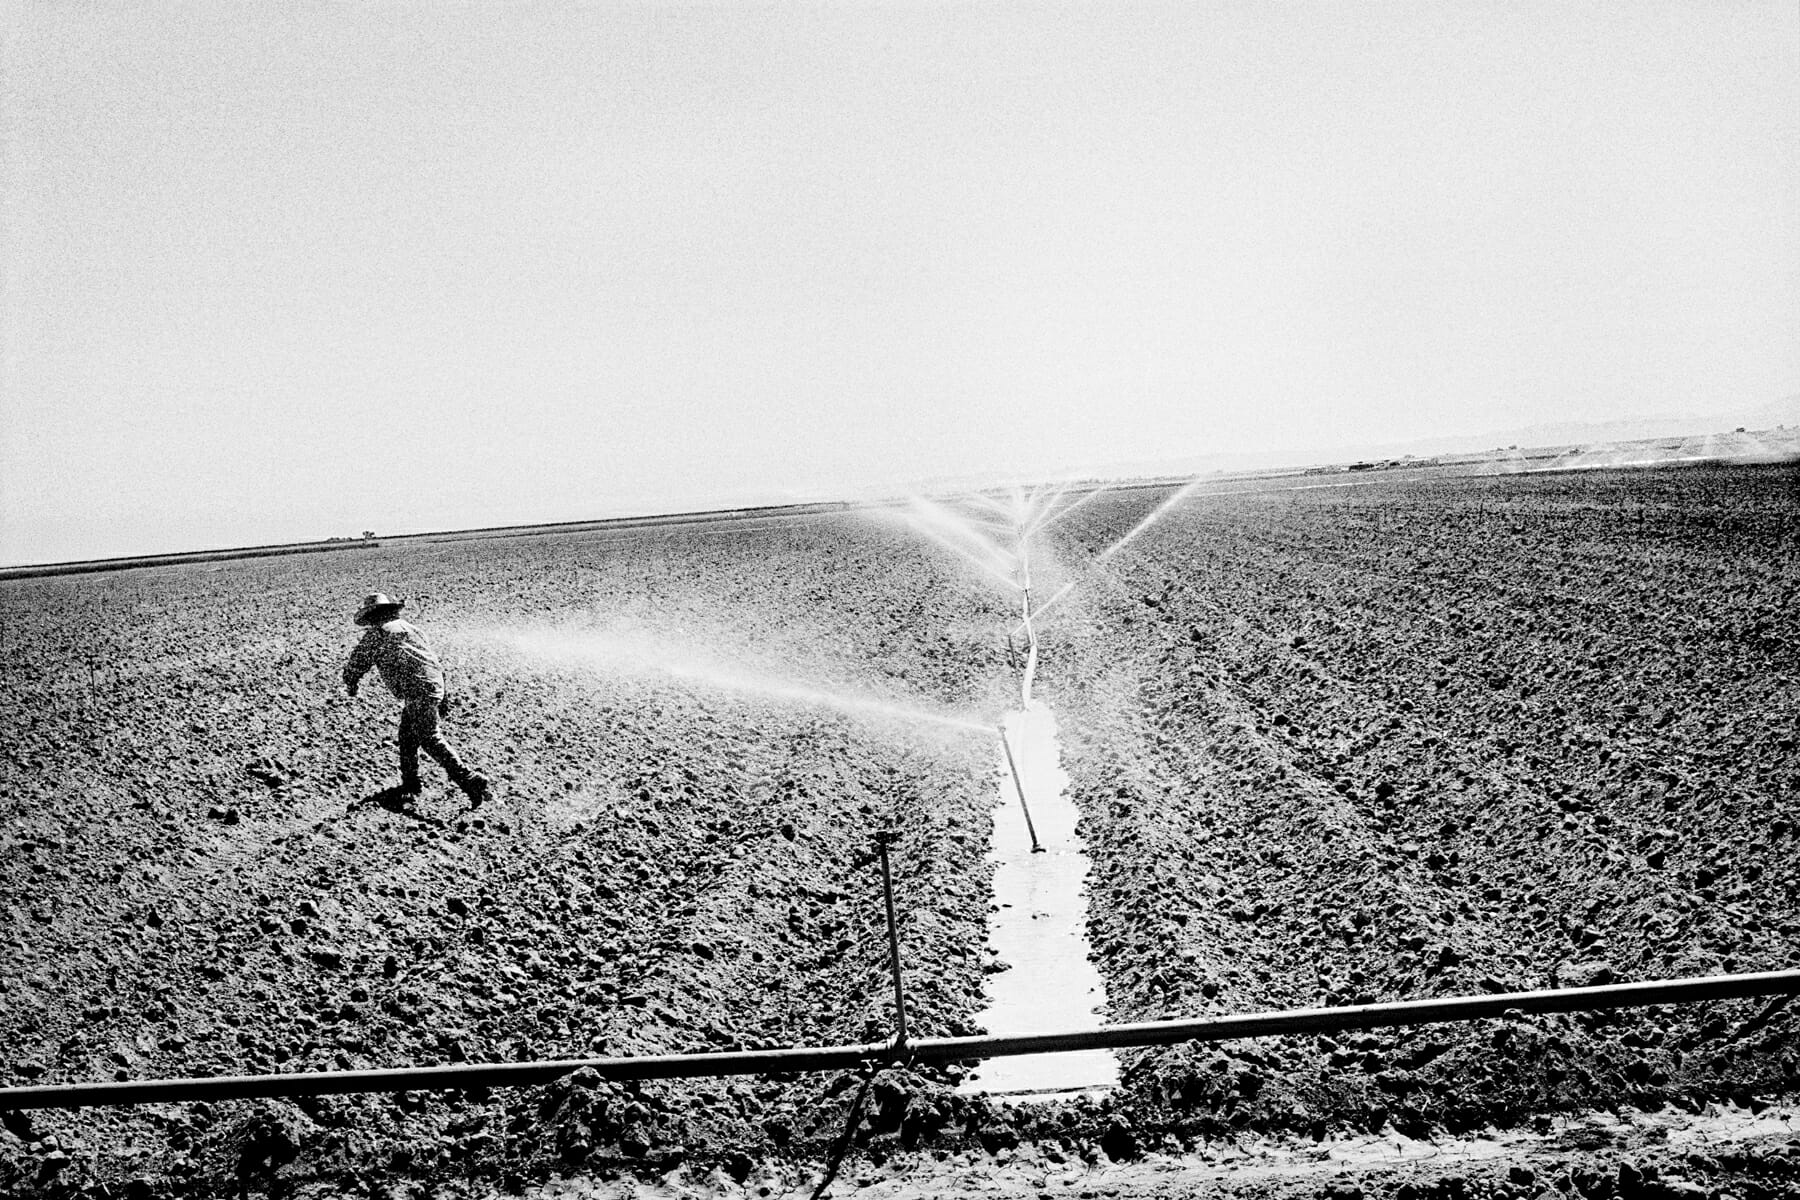 A worker waters a tomato field near Huron, CA.